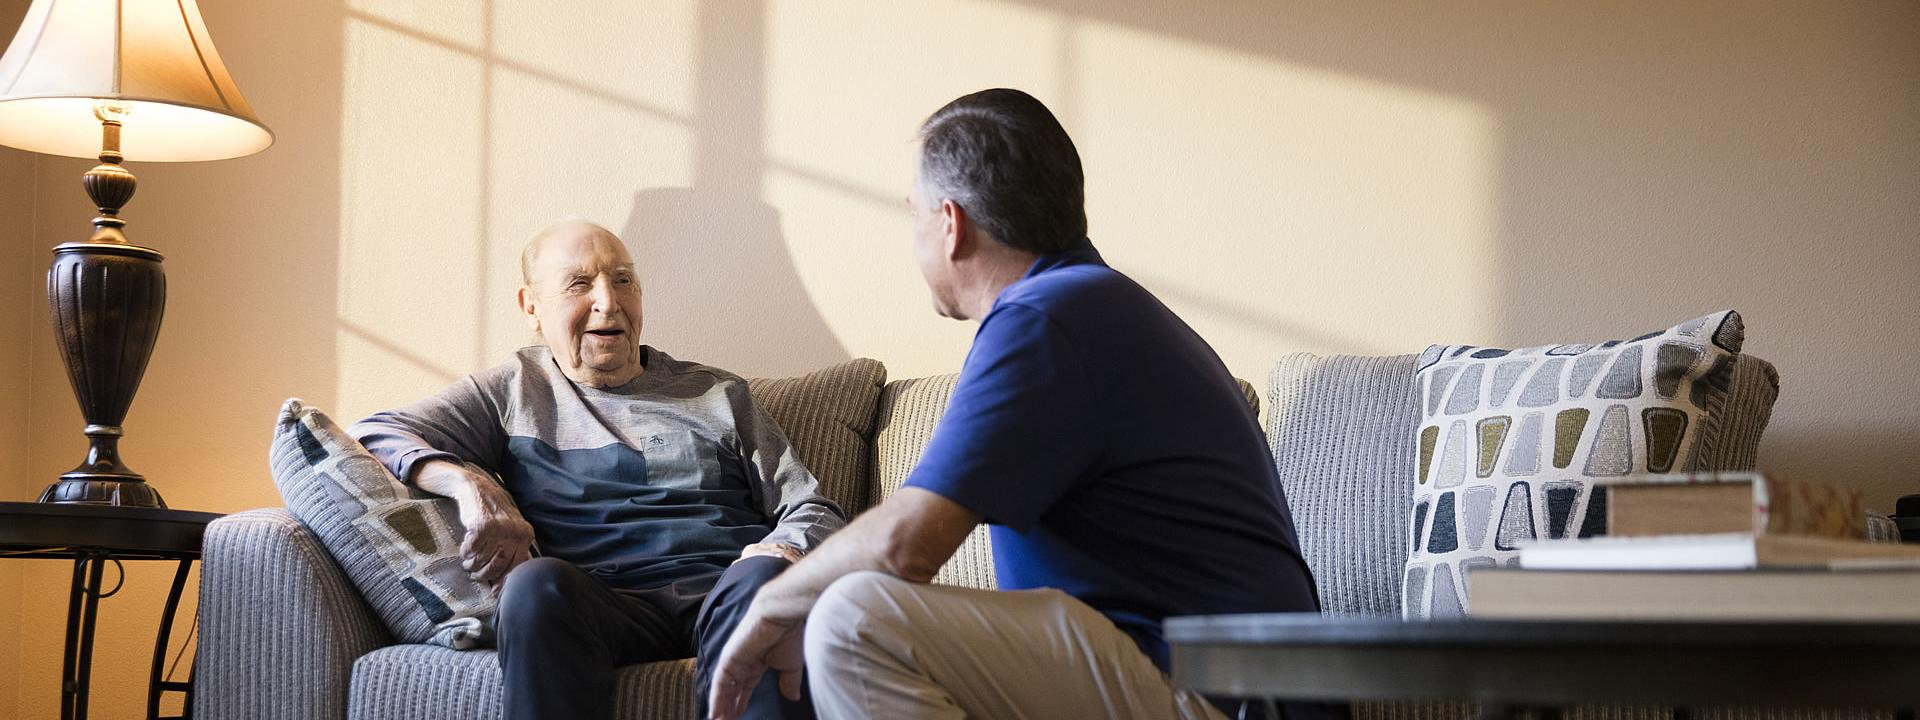 Caregiver and resident sitting a the couch smiling and talking